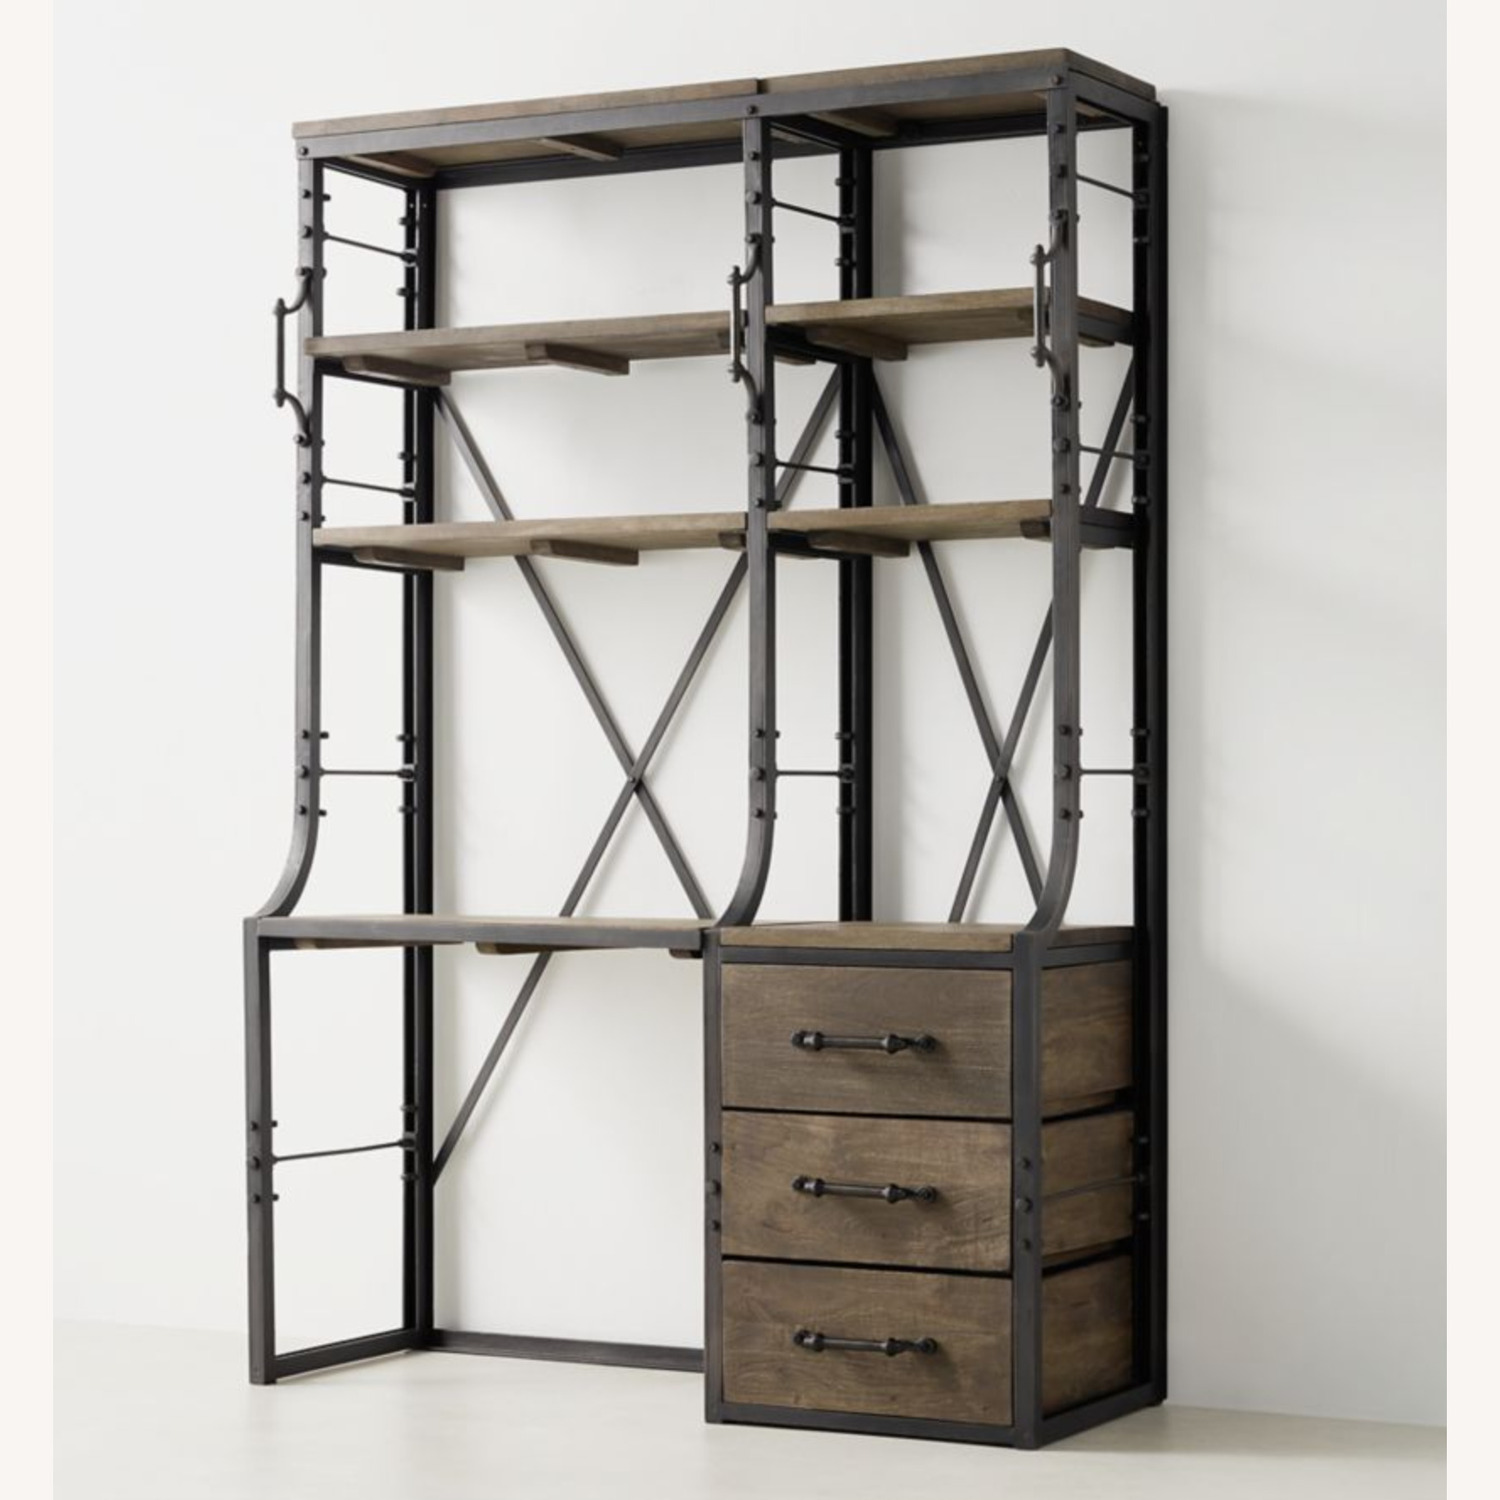 Restoration Hardware French Library Desk with Drawers - image-2